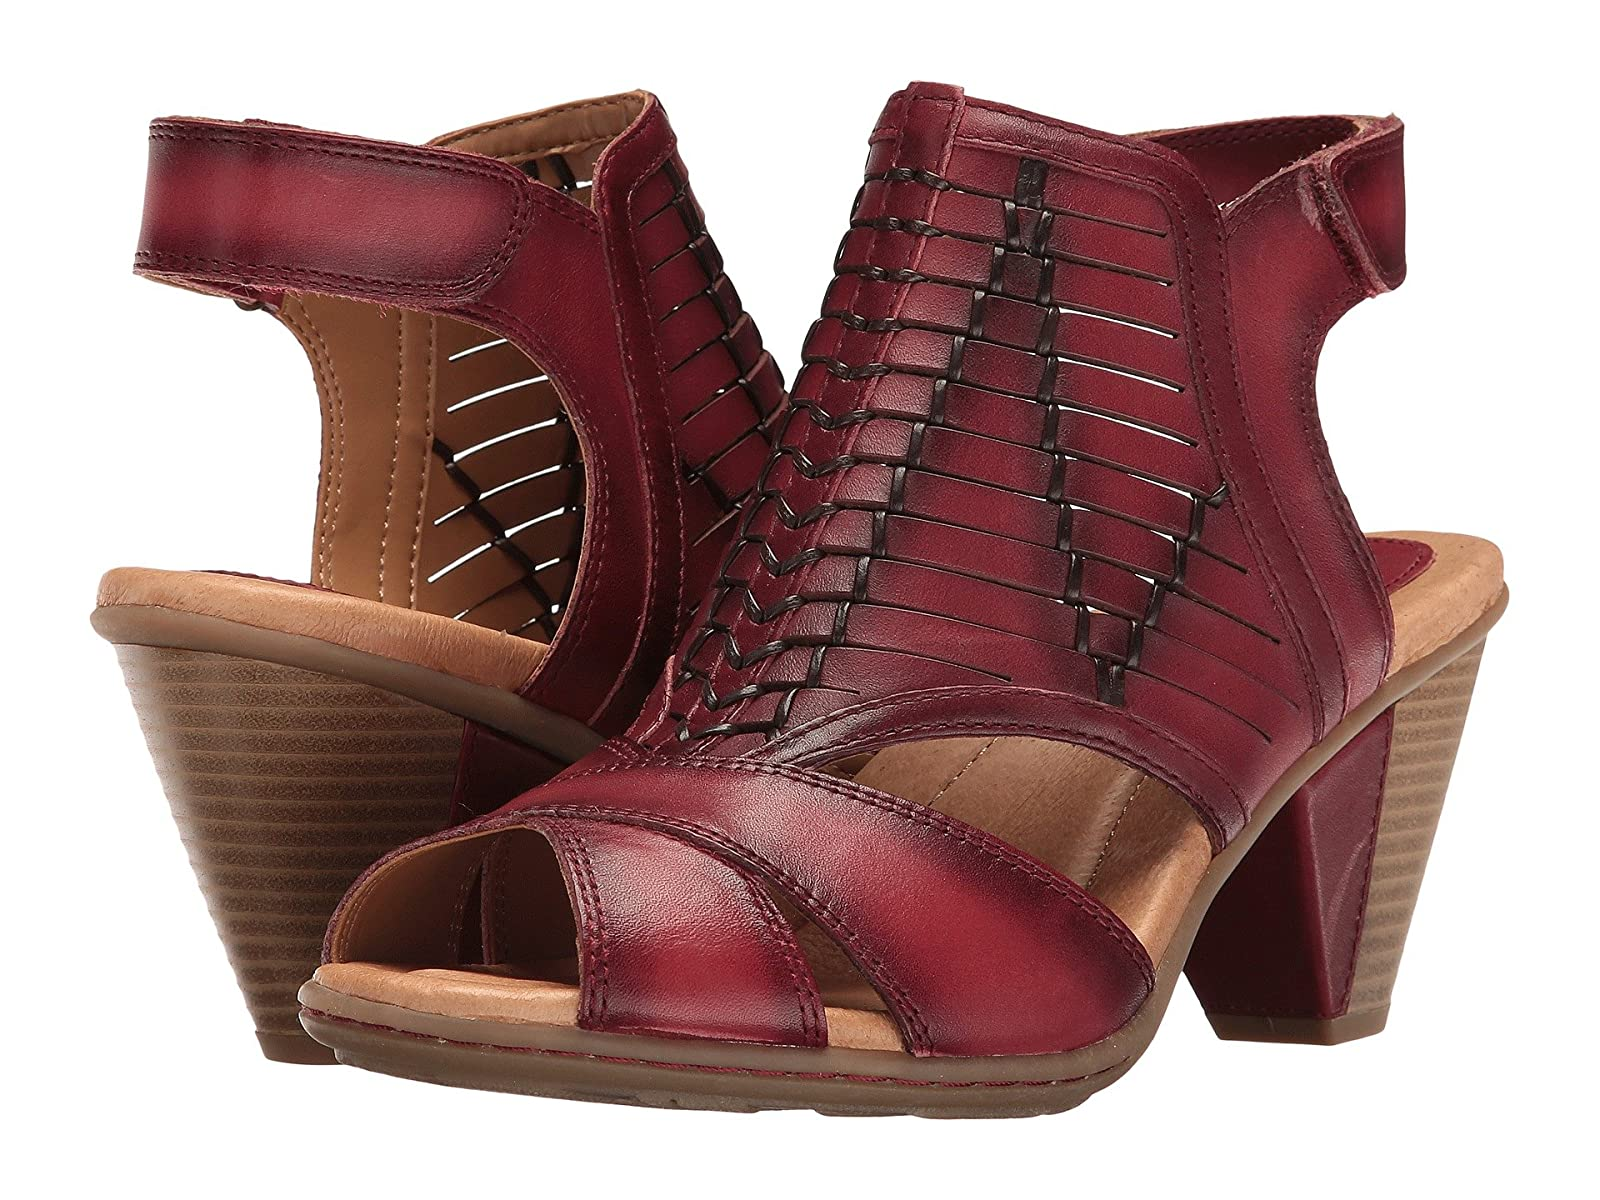 Earth LibraCheap and distinctive eye-catching shoes